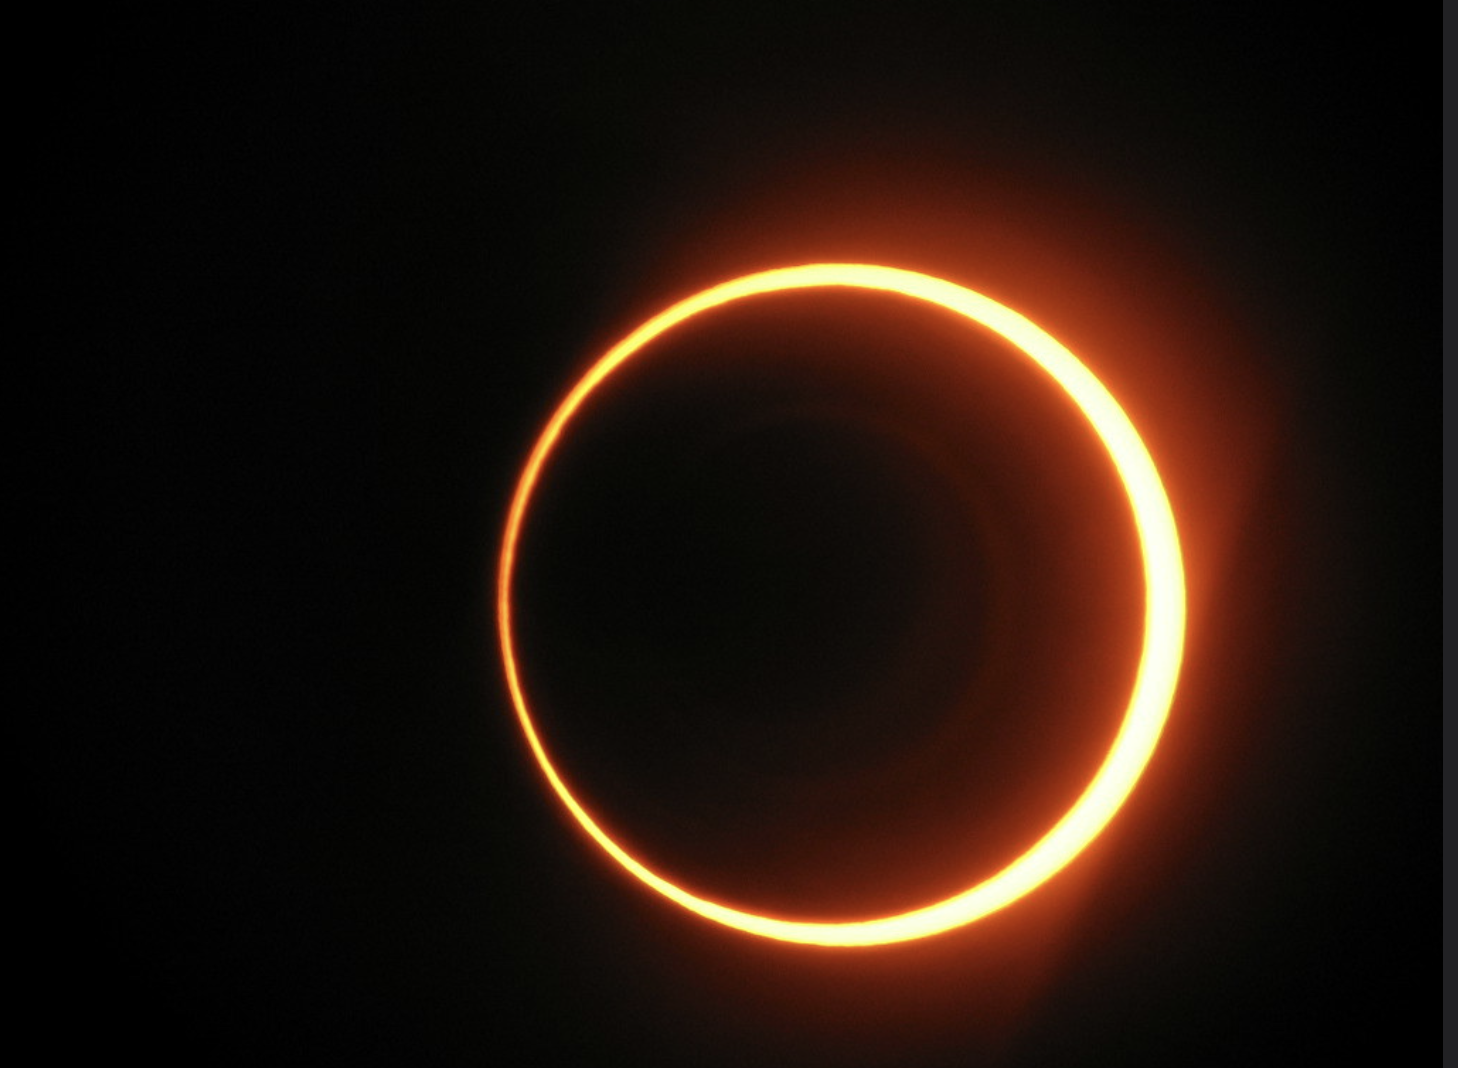 Ring of fire' solar eclipse on June 10 'Ring of fire' solar eclipse on June  10